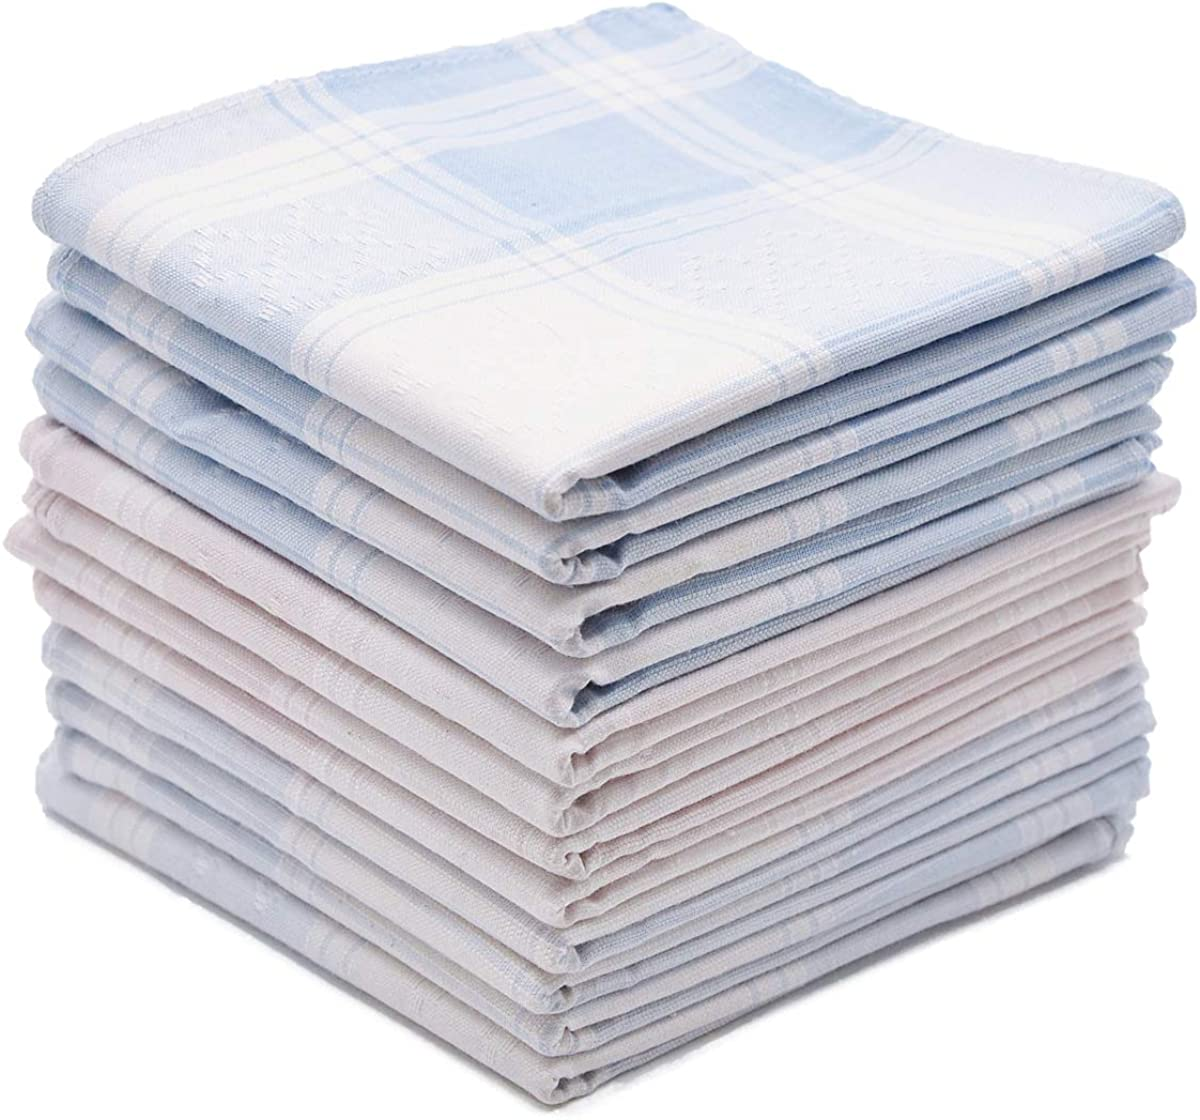 Large Soft Cotton Handkerchiefs for Elegant Direct Low price sale of manufacturer in Men Pattern with